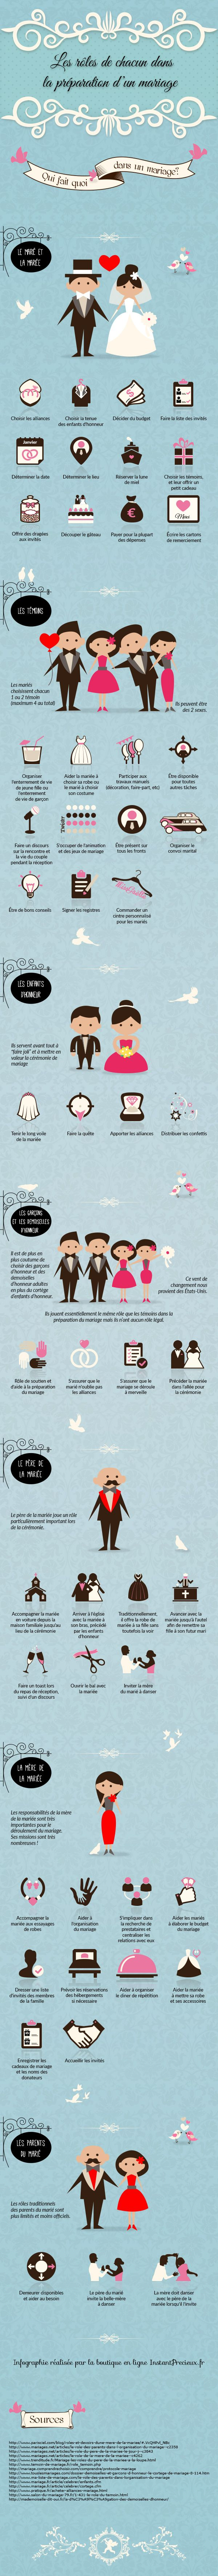 #wedding #mariage #roles #infographie